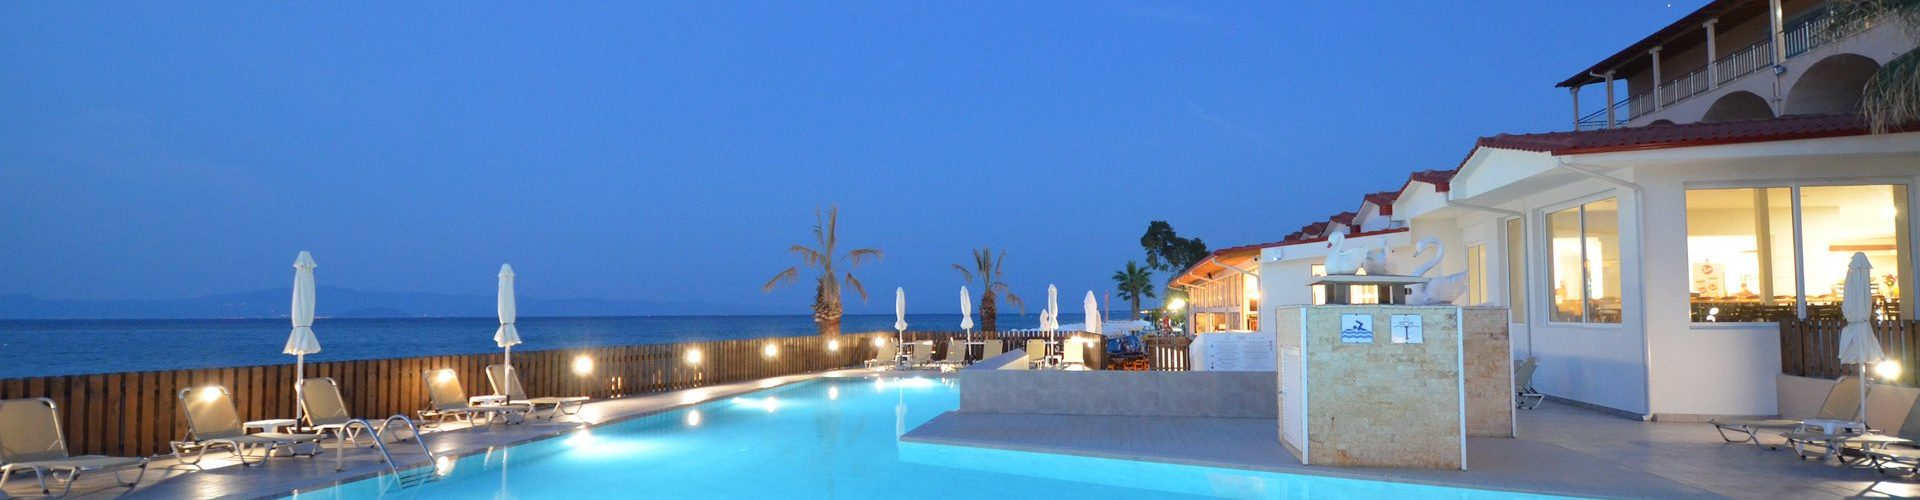 Sousouras Hotel Pool 24